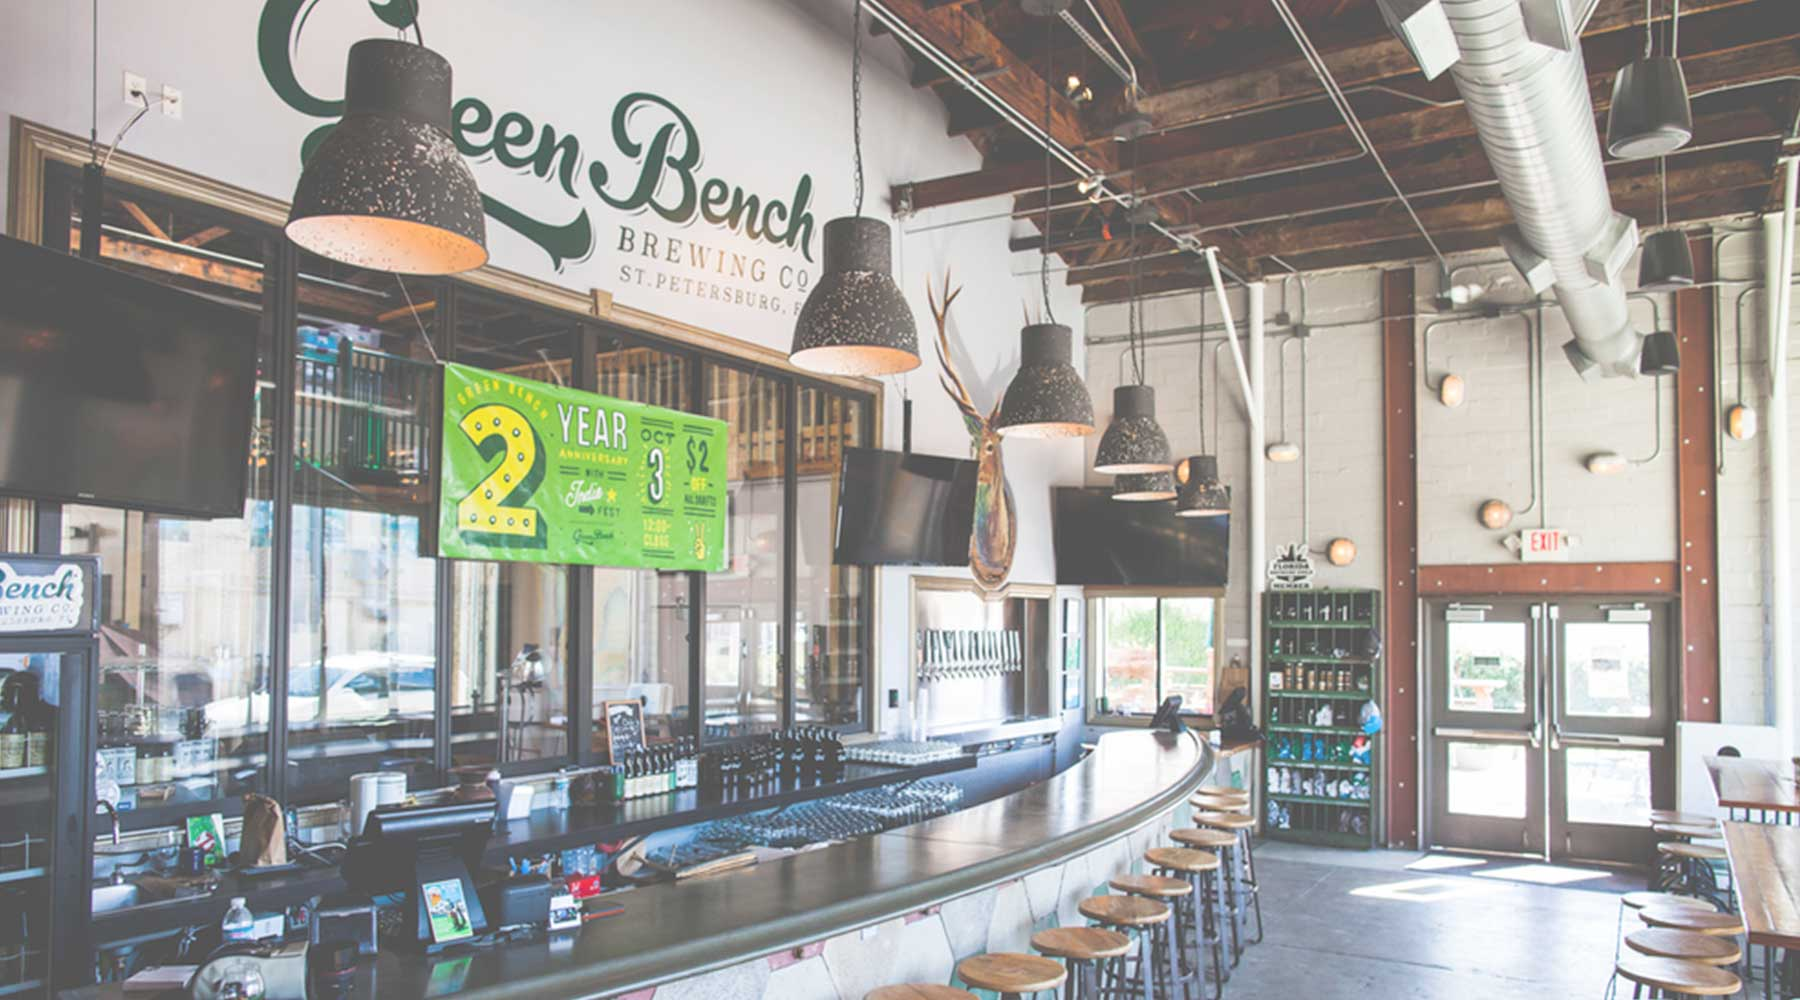 Green Bench Brewing Company | Just Wine